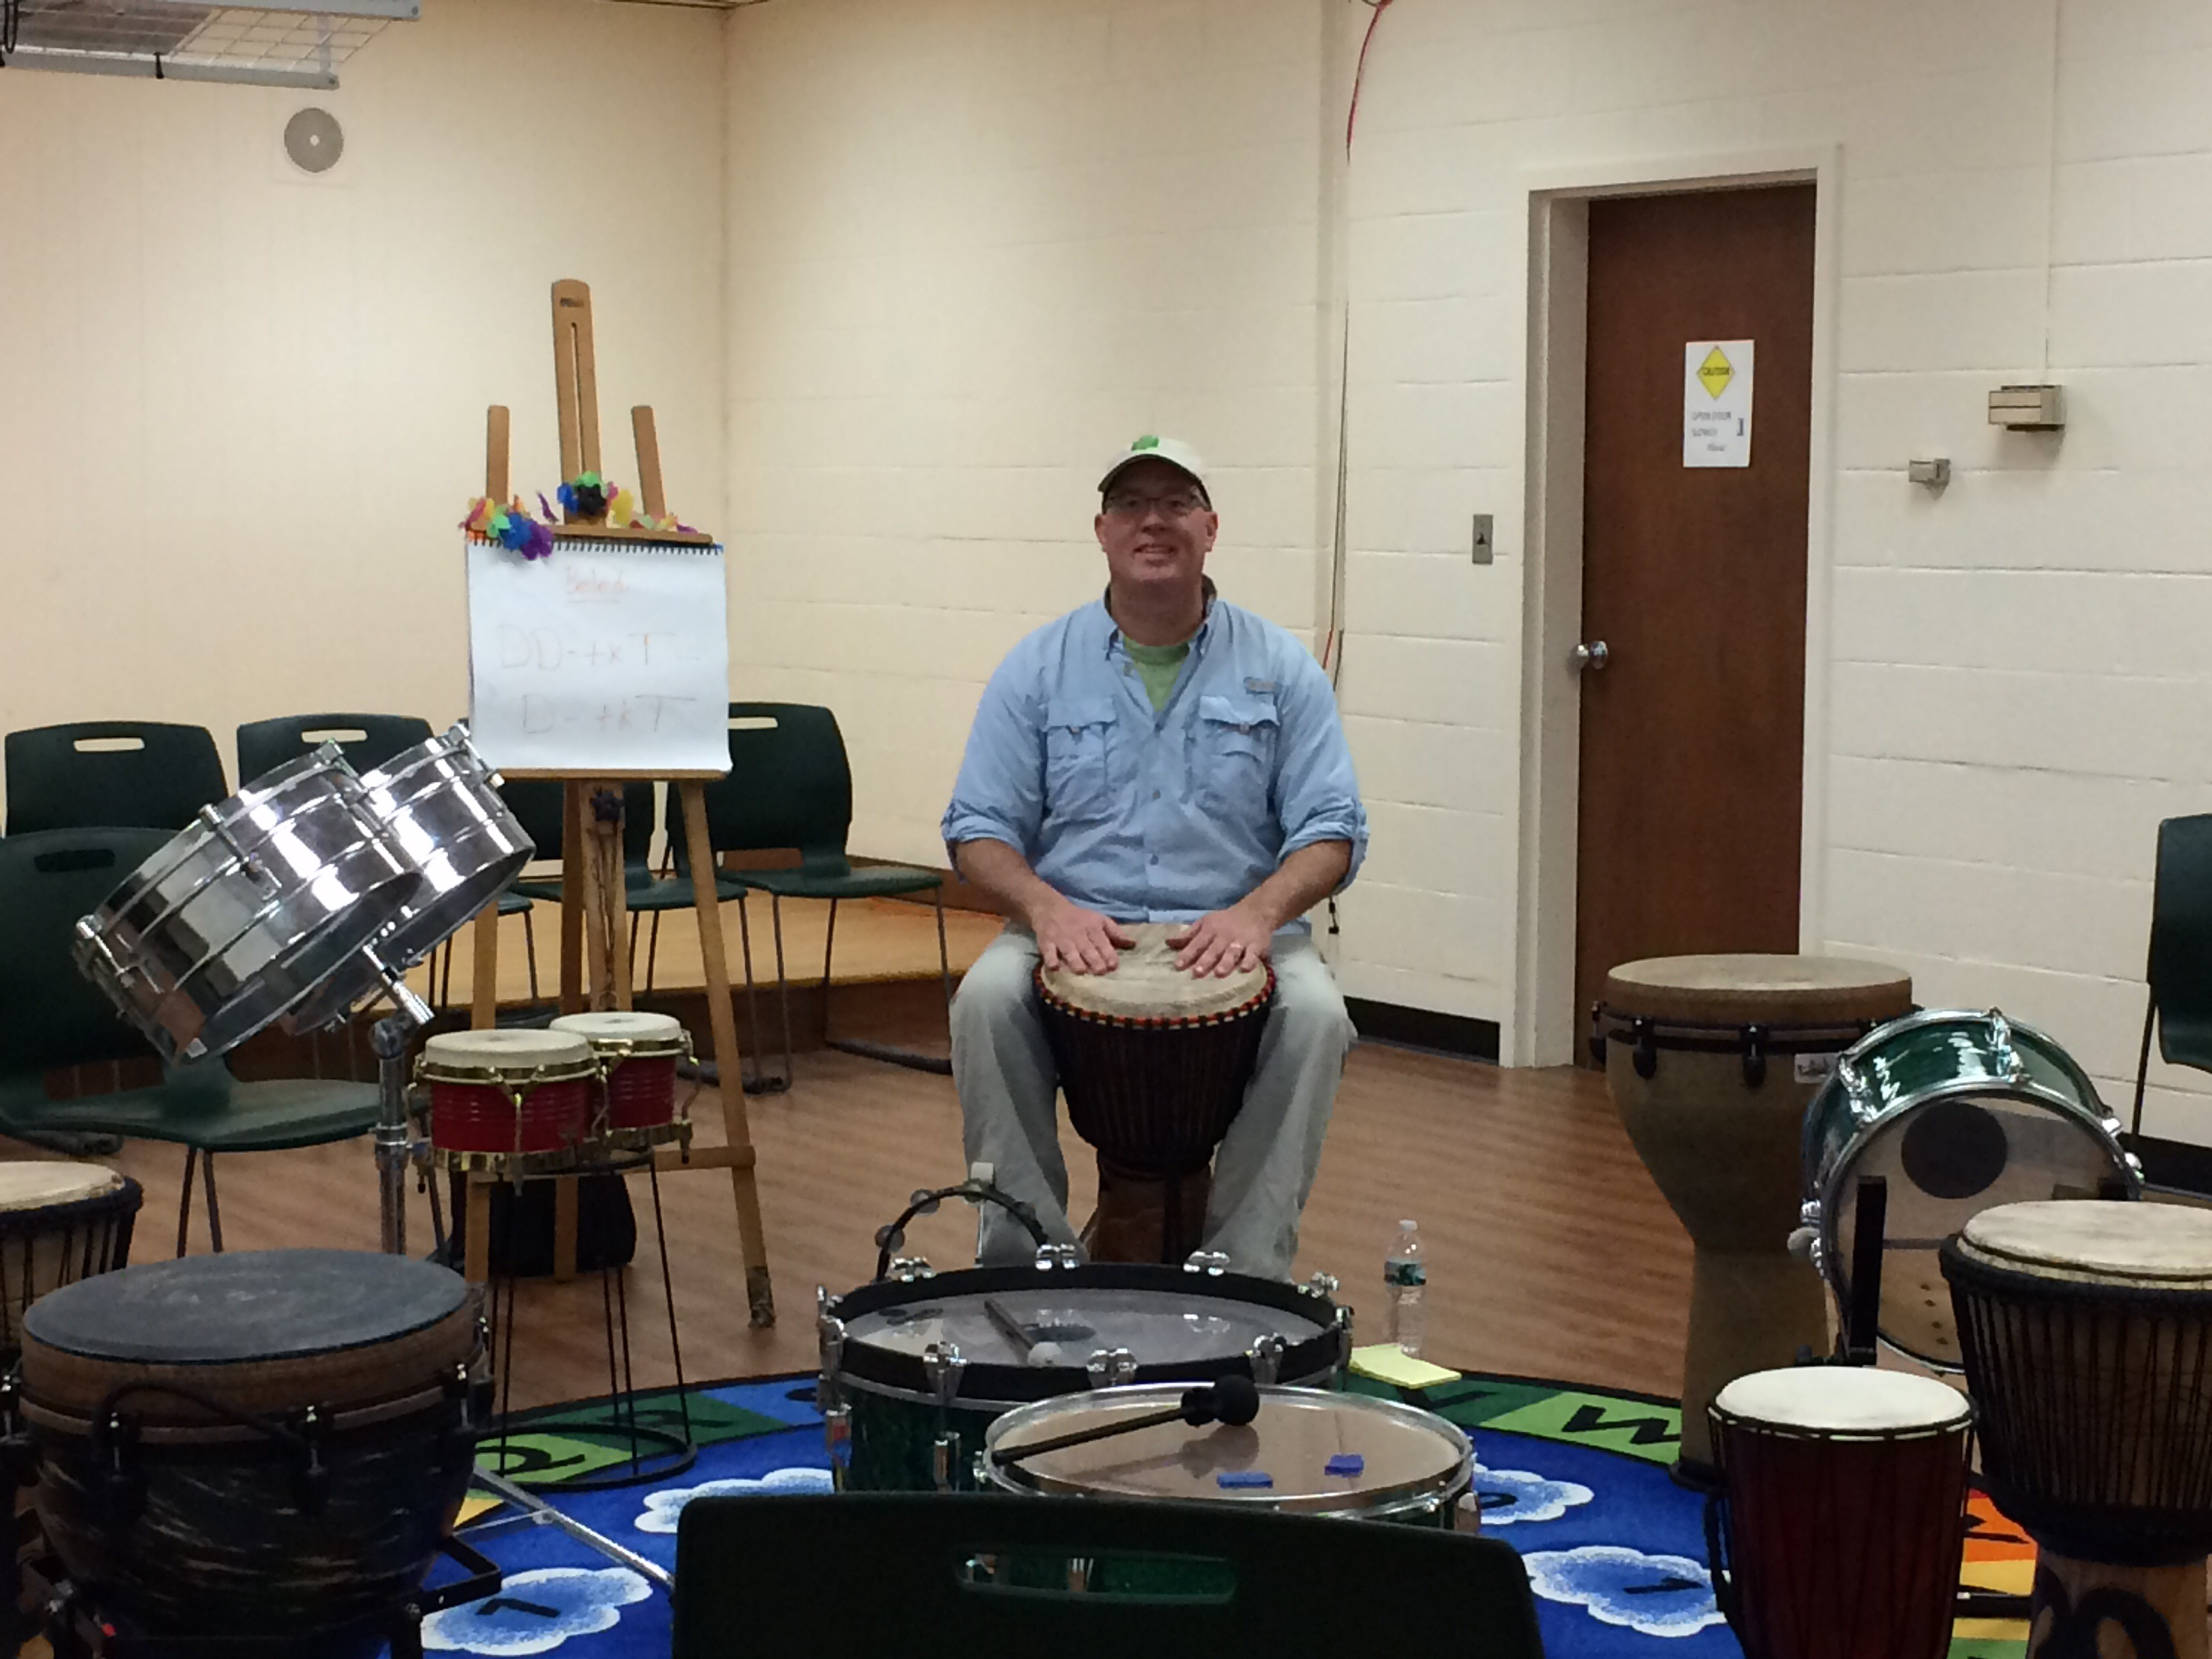 Kane drums brookfield ma professional and certified for West brookfield elementary school craft fair